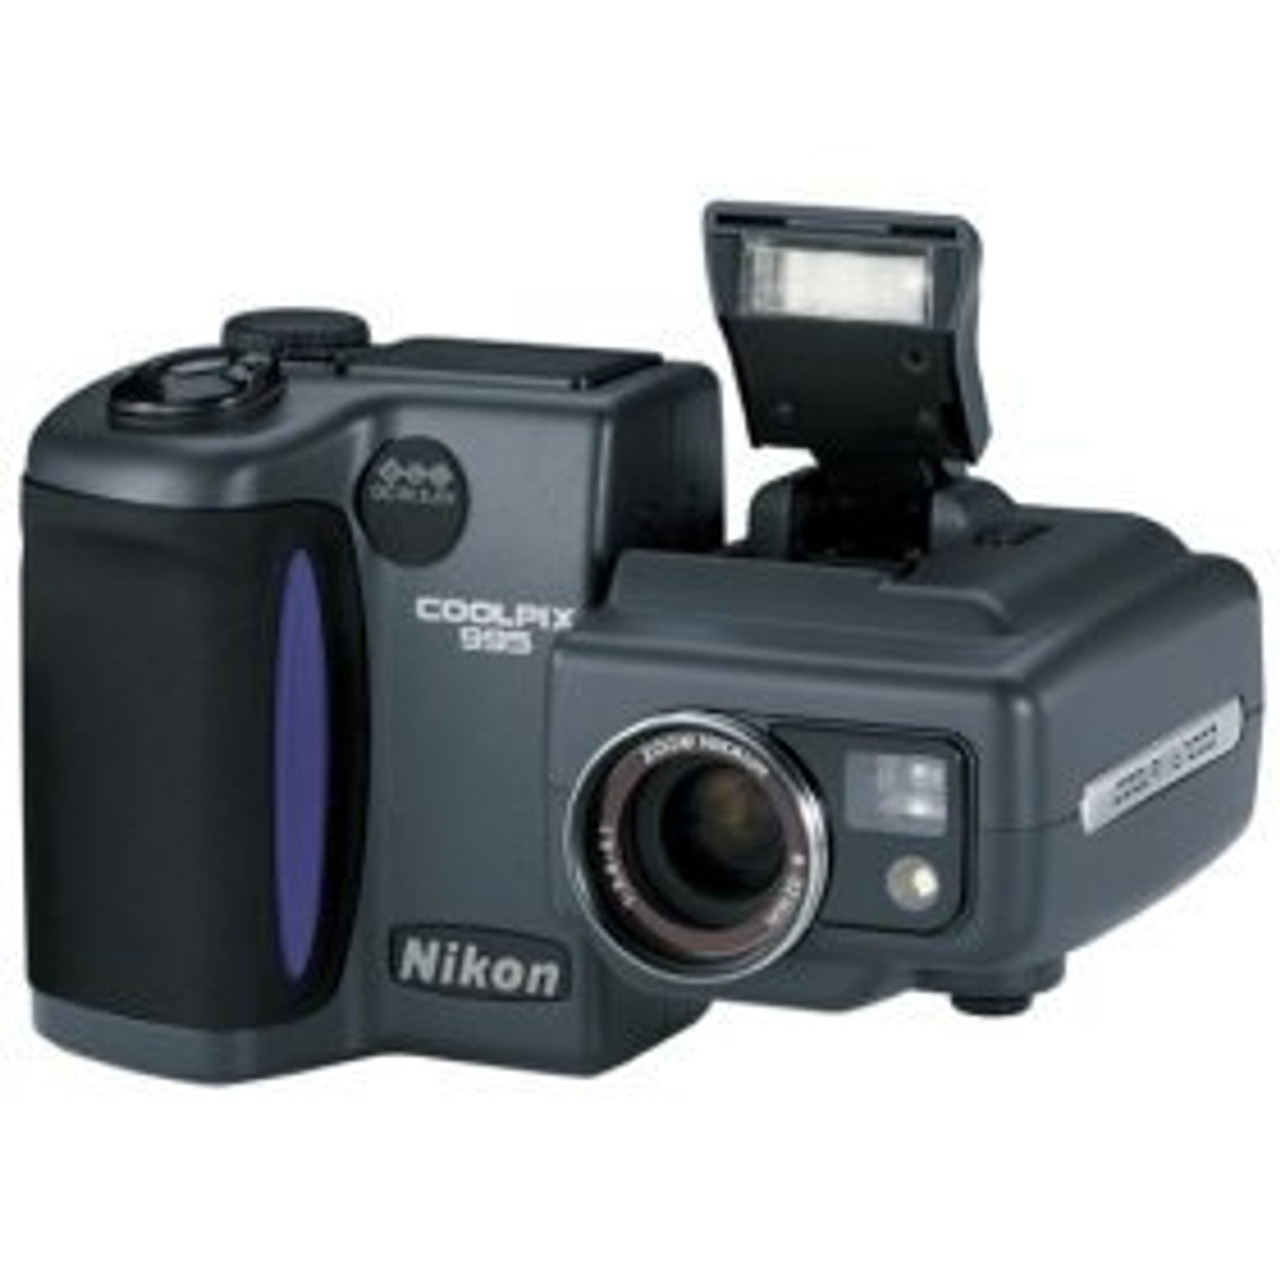 Nikon Coolpix 995 Digital Camera